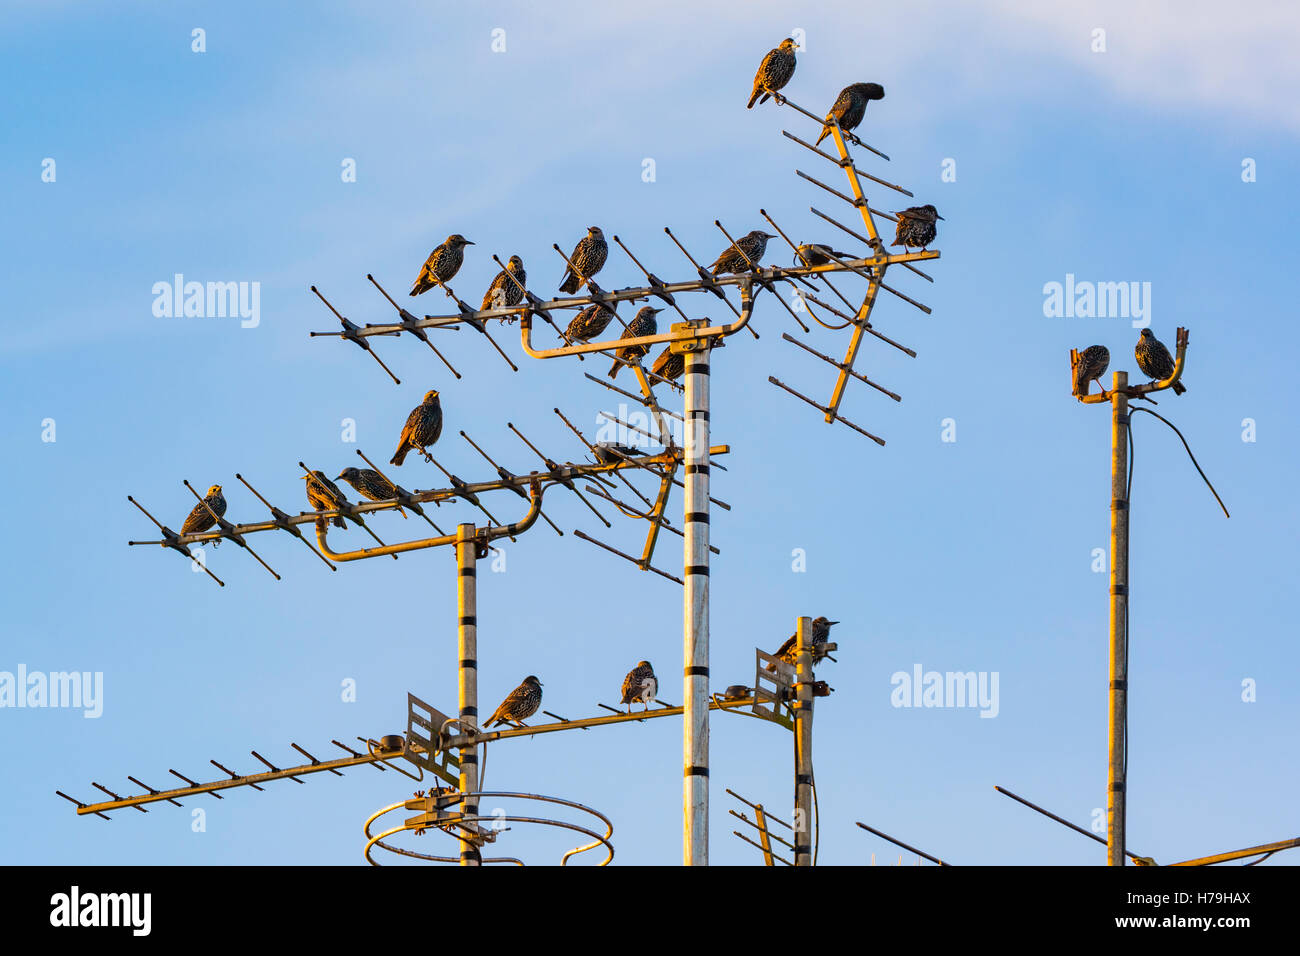 Starlings sitting on a TV aerial against a blue sky background in West Sussex, England, UK. - Stock Image